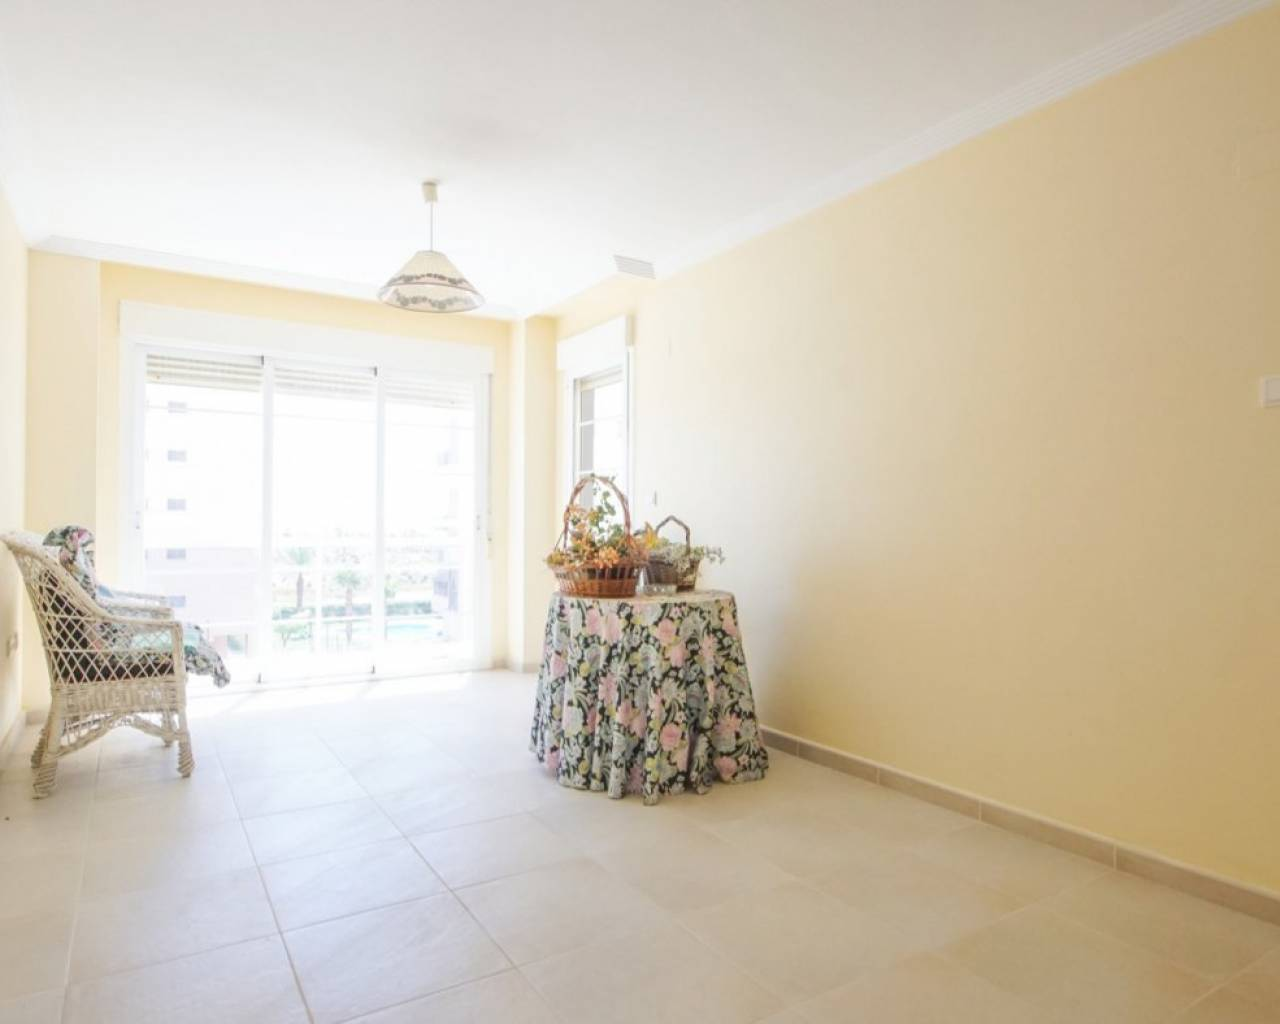 Sale - Apartment - Guardamar del Segura - CLUB NAUTICO